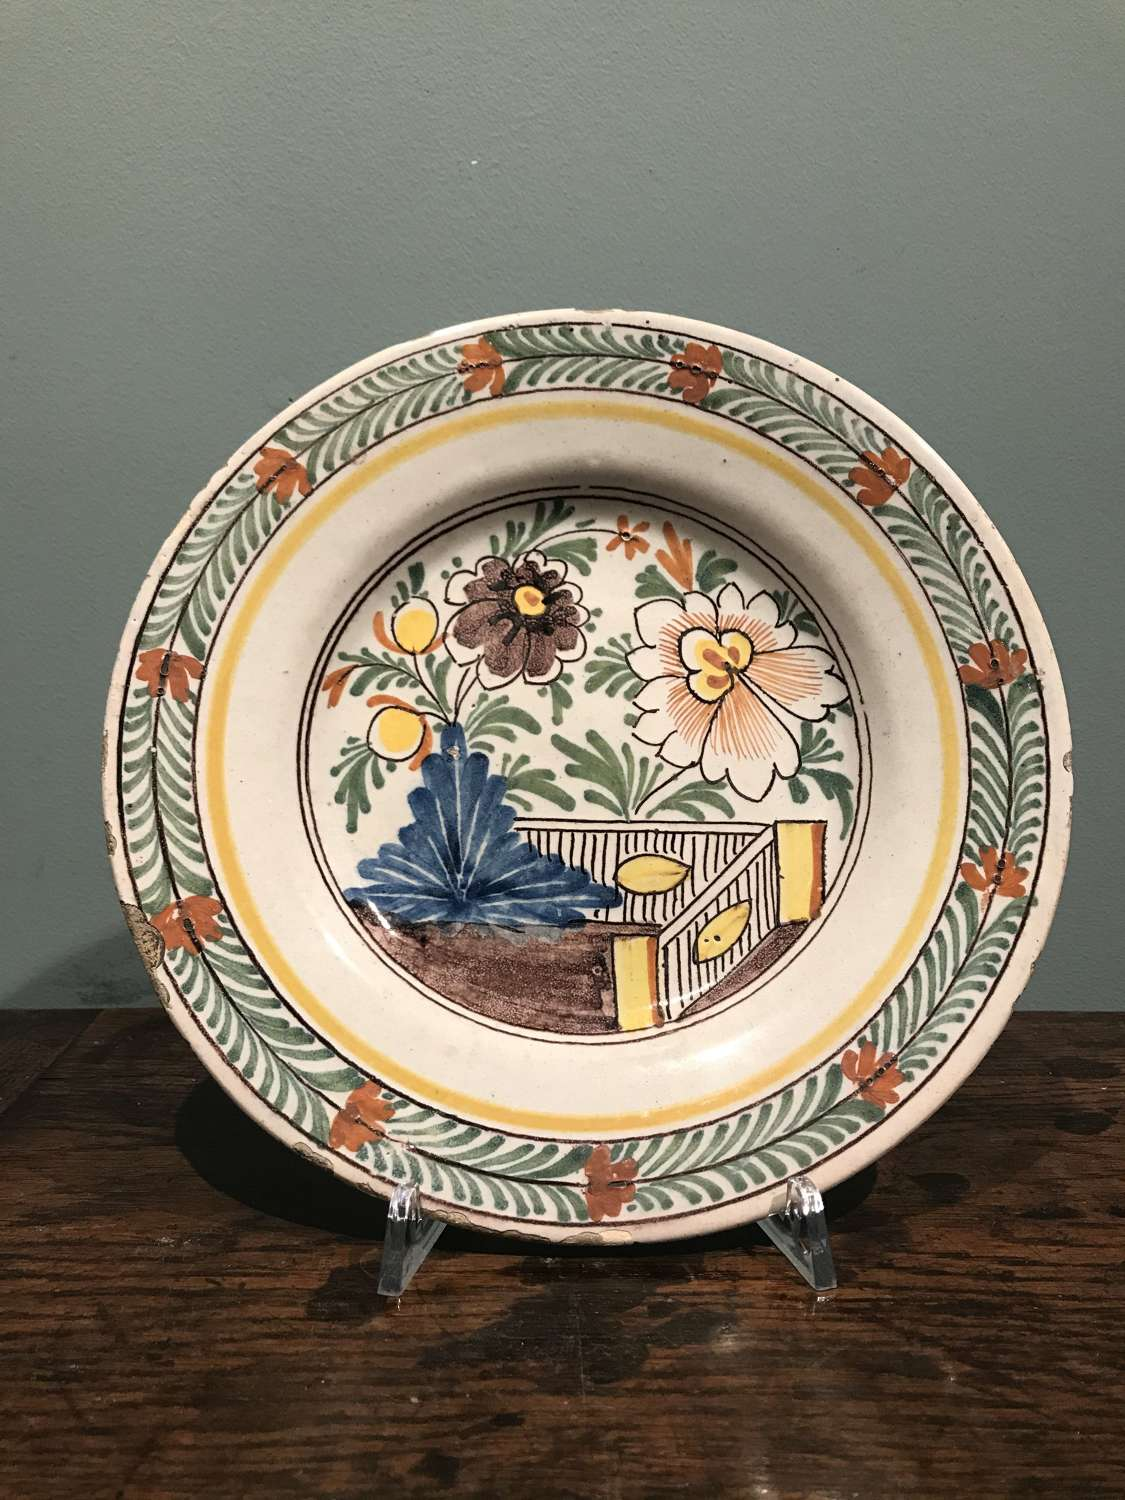 Mid 18th c. Dutch Delft polychrome plate